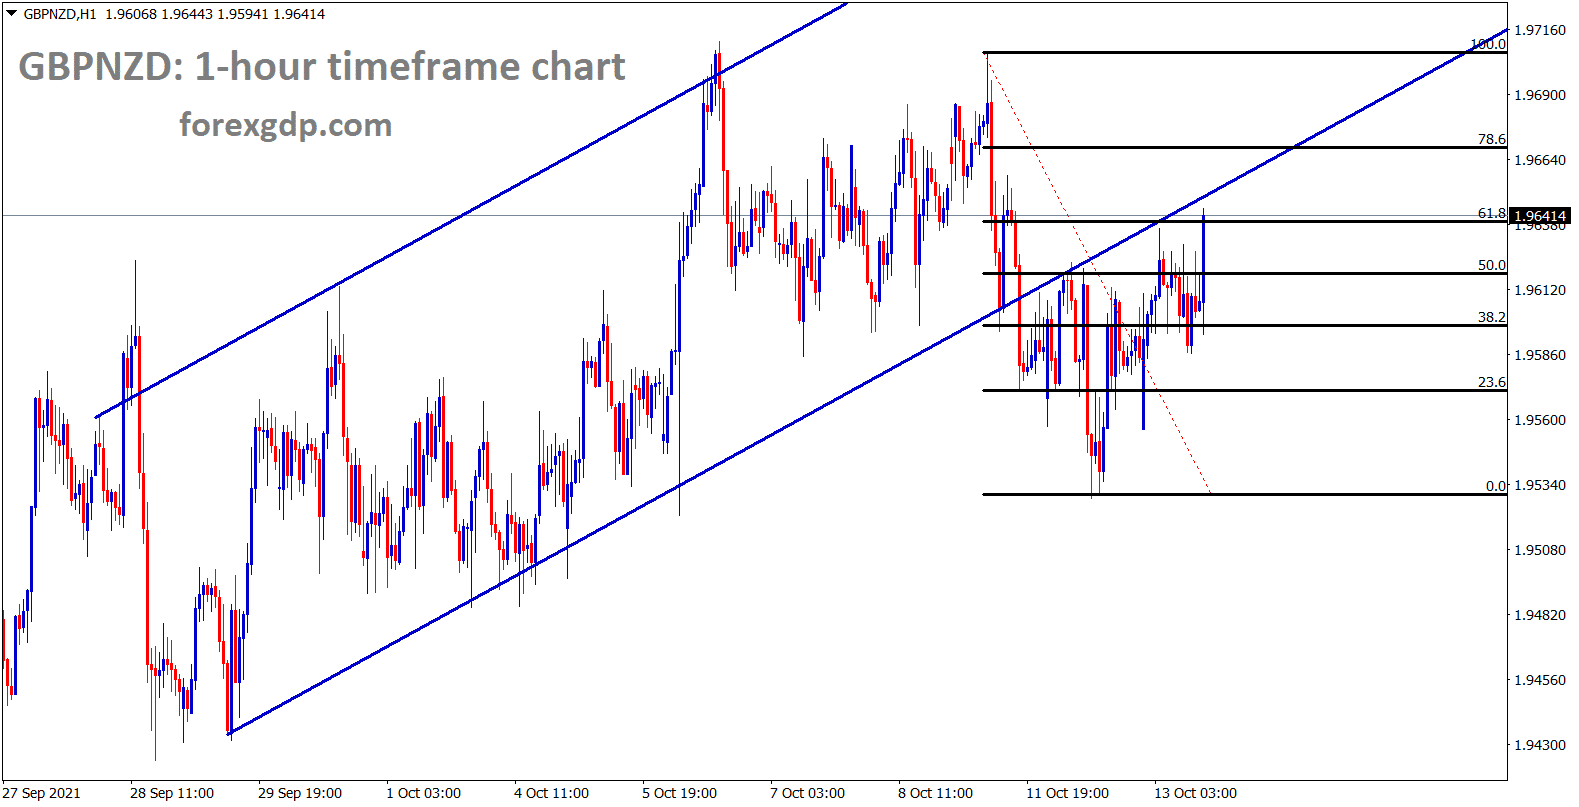 GBPNZD is consolidating at the retest area of the ascending channel range and it has retraced 61 from the previous high